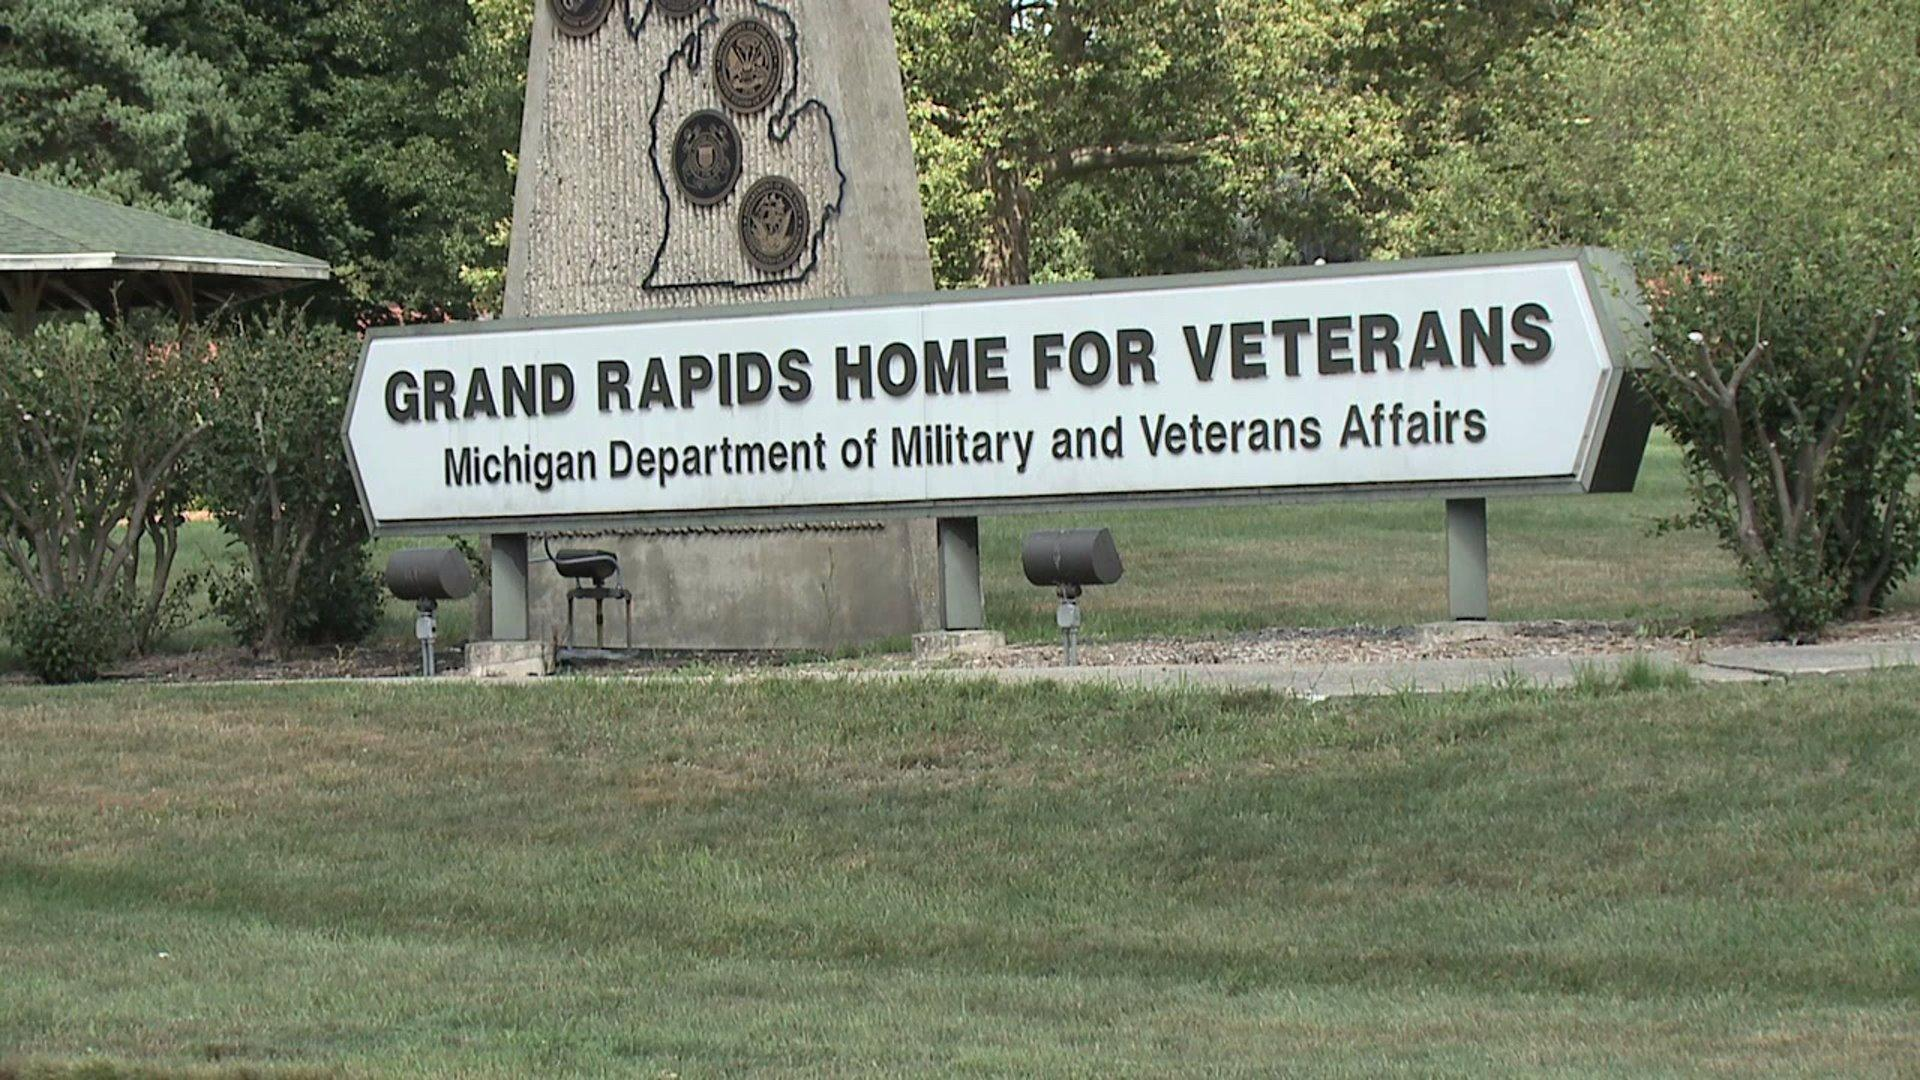 11 Former Caregivers at Veterans Home Charged For Not Doing Room Checks, Falsifying Information